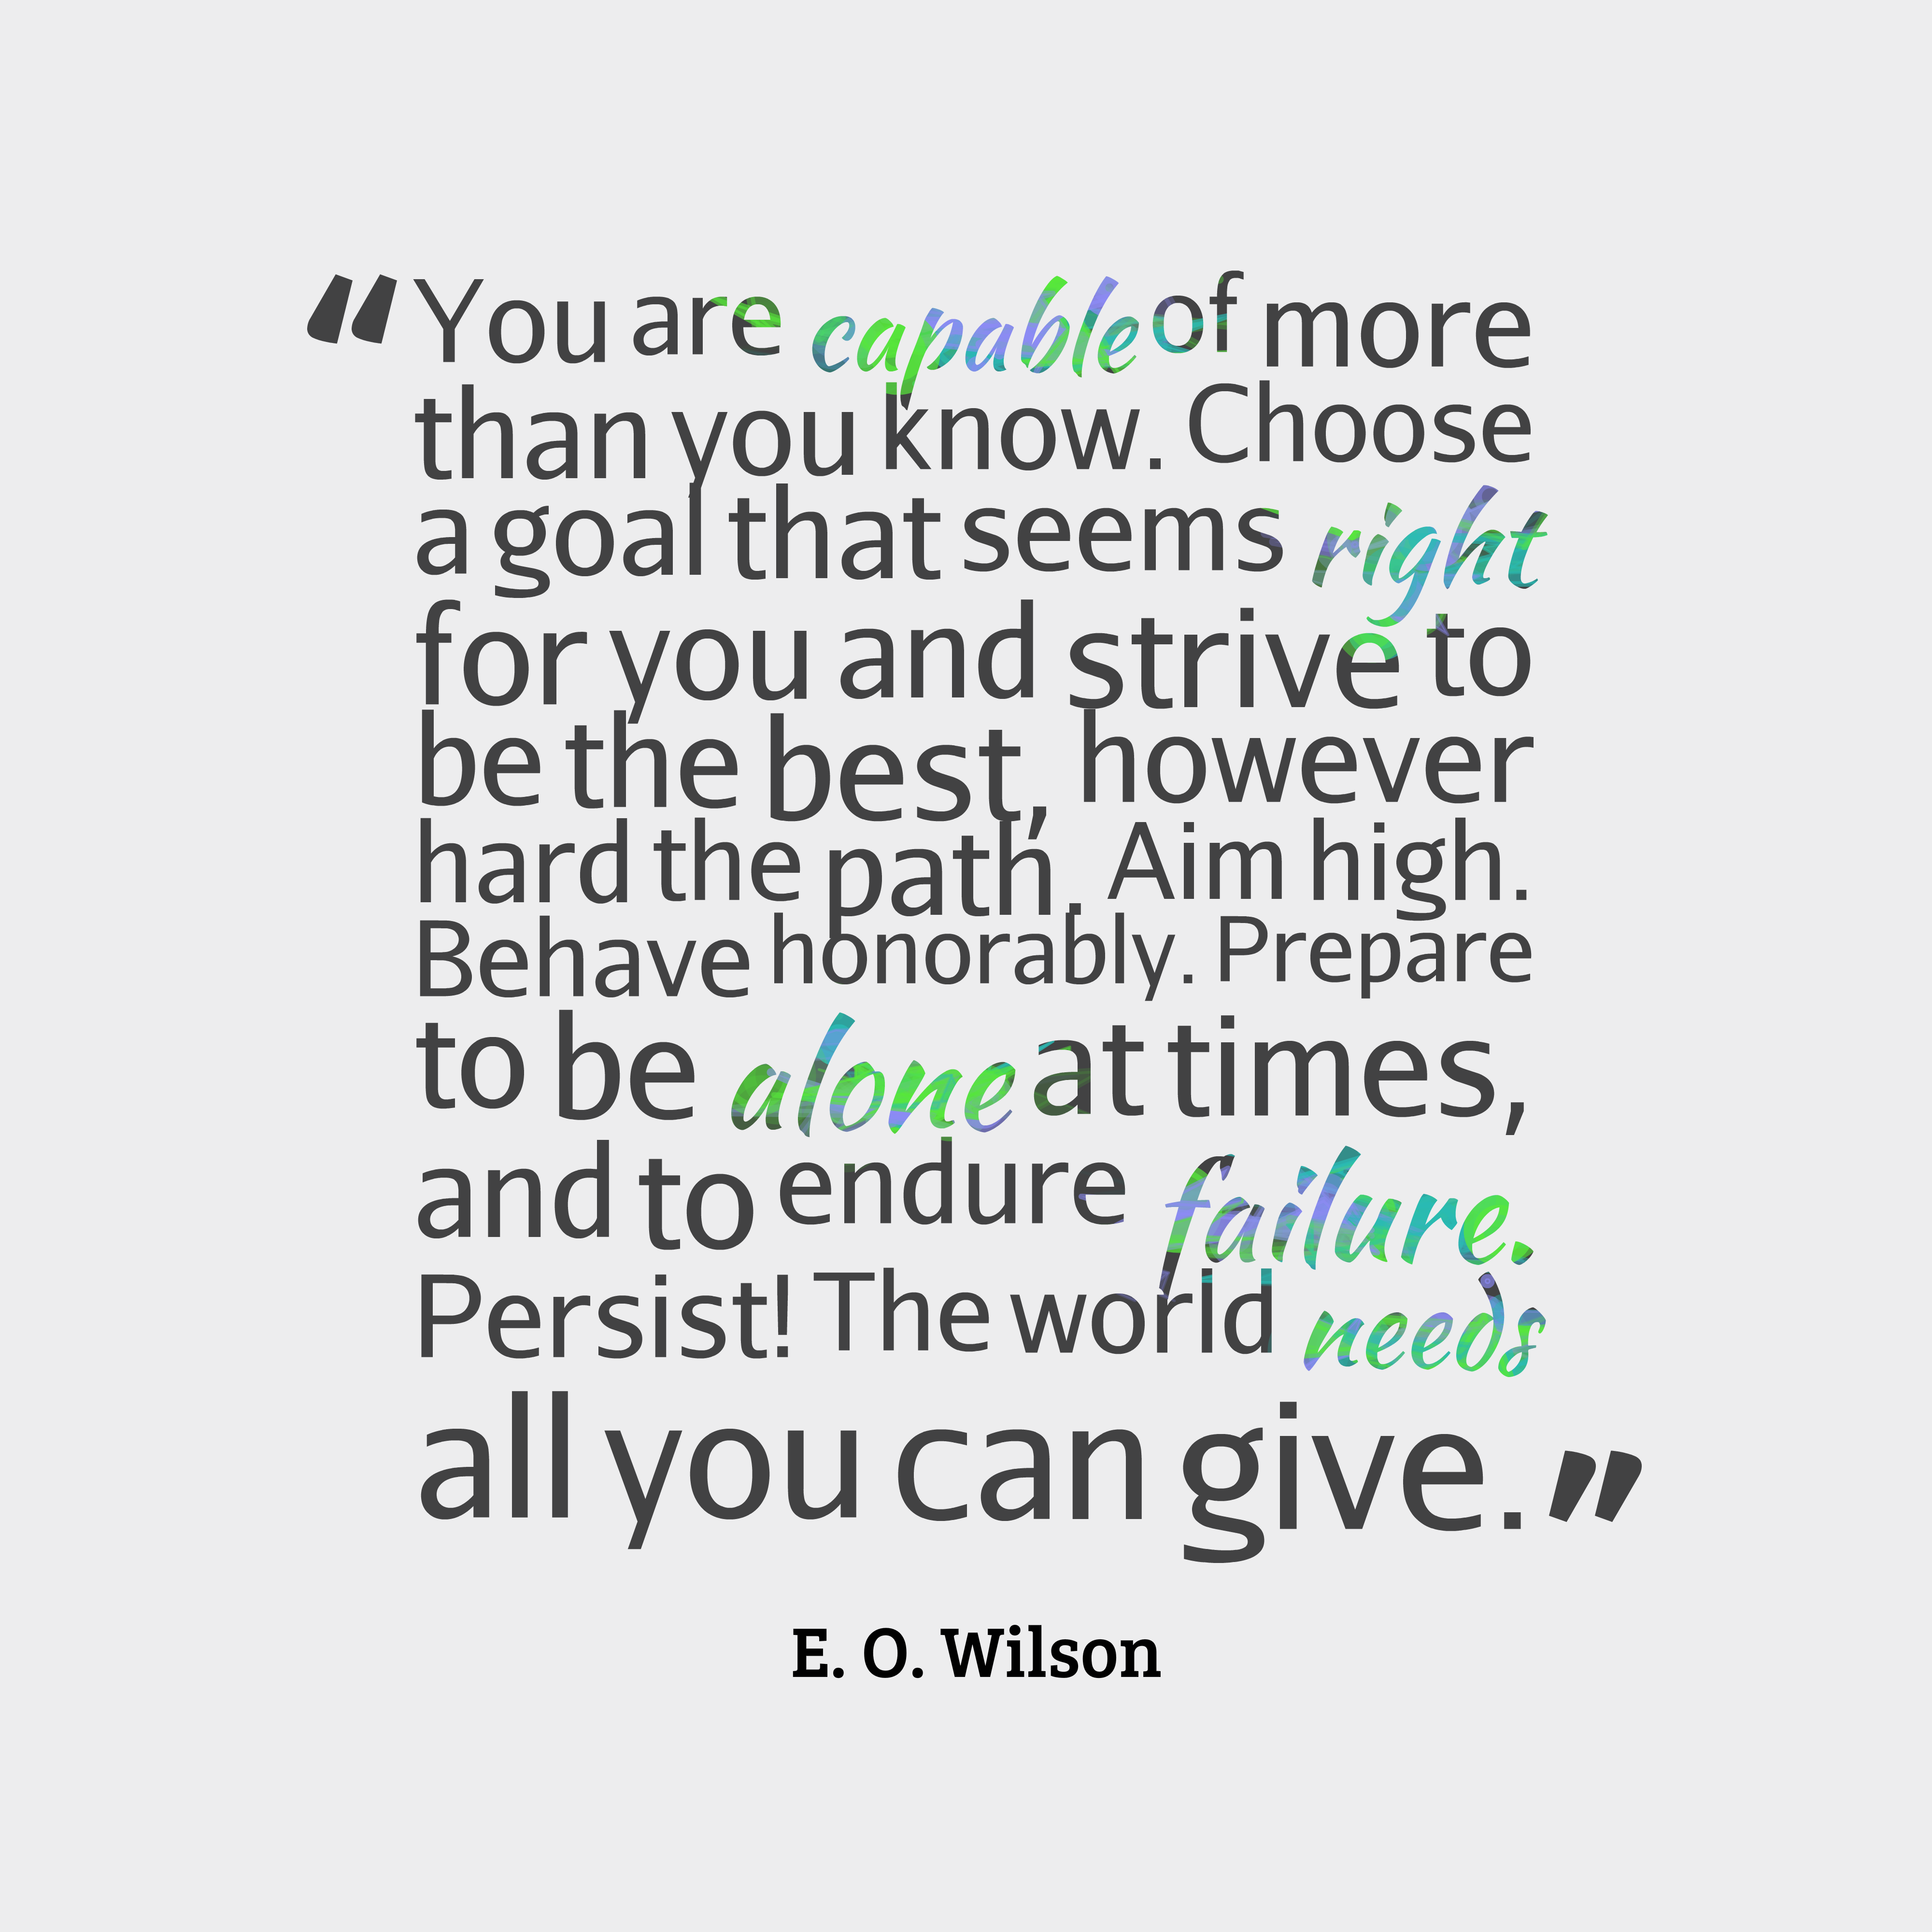 E O Wilson Quote About Life